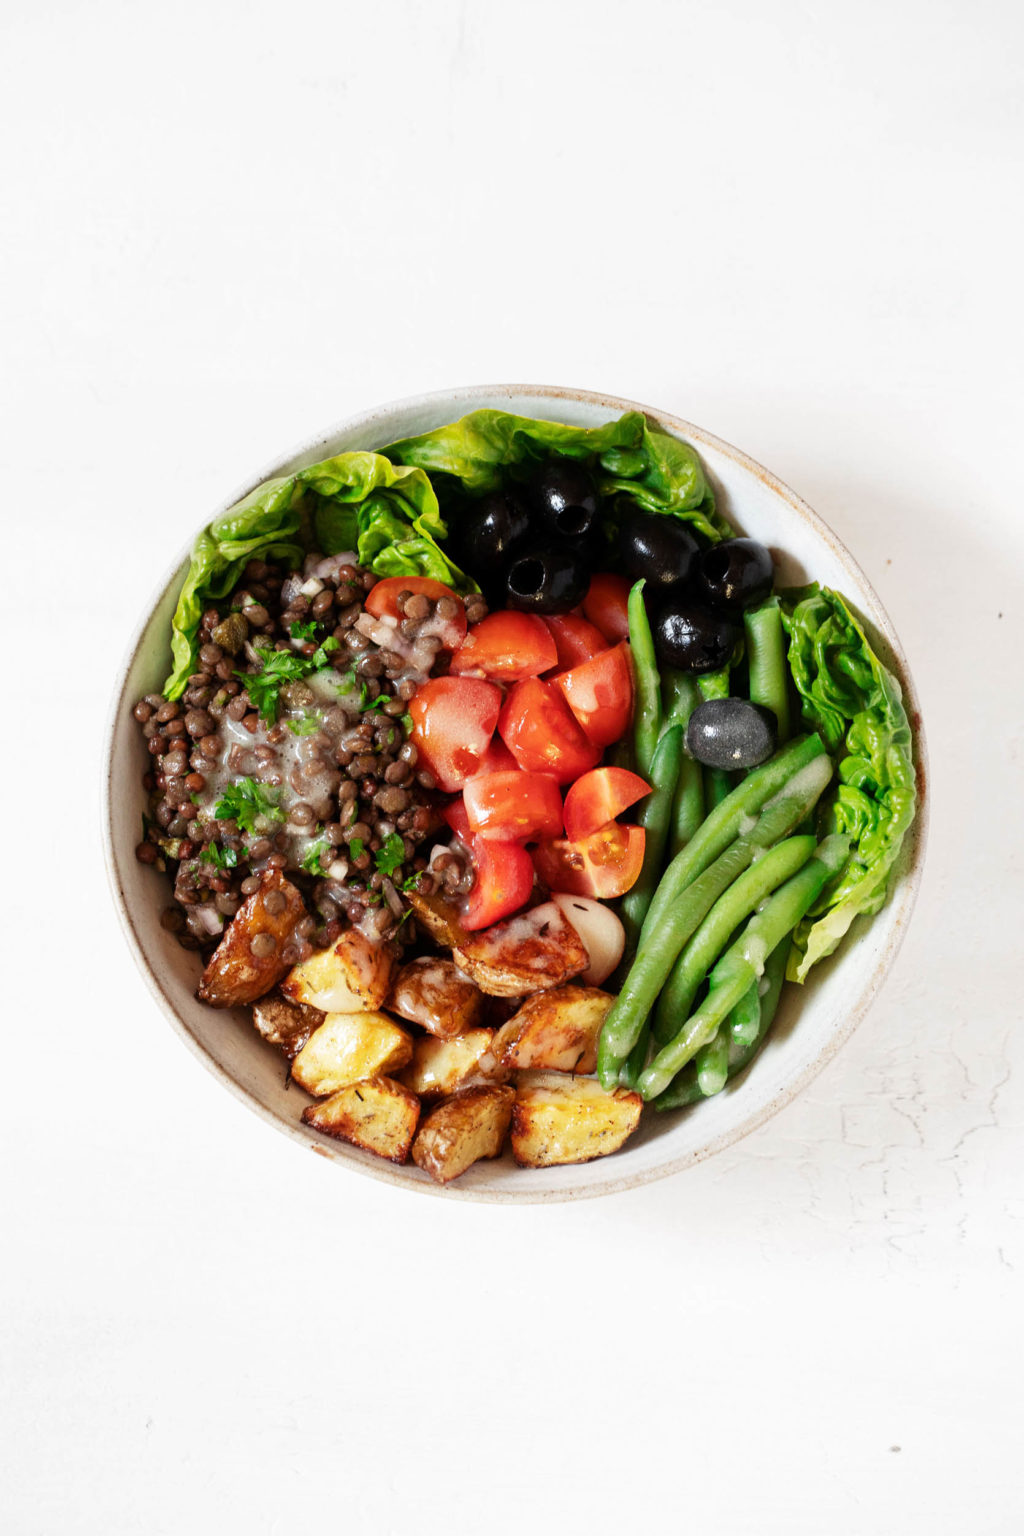 An overhead photo of a synthetic salad that has been made using a variety of colorful plant ingredients.